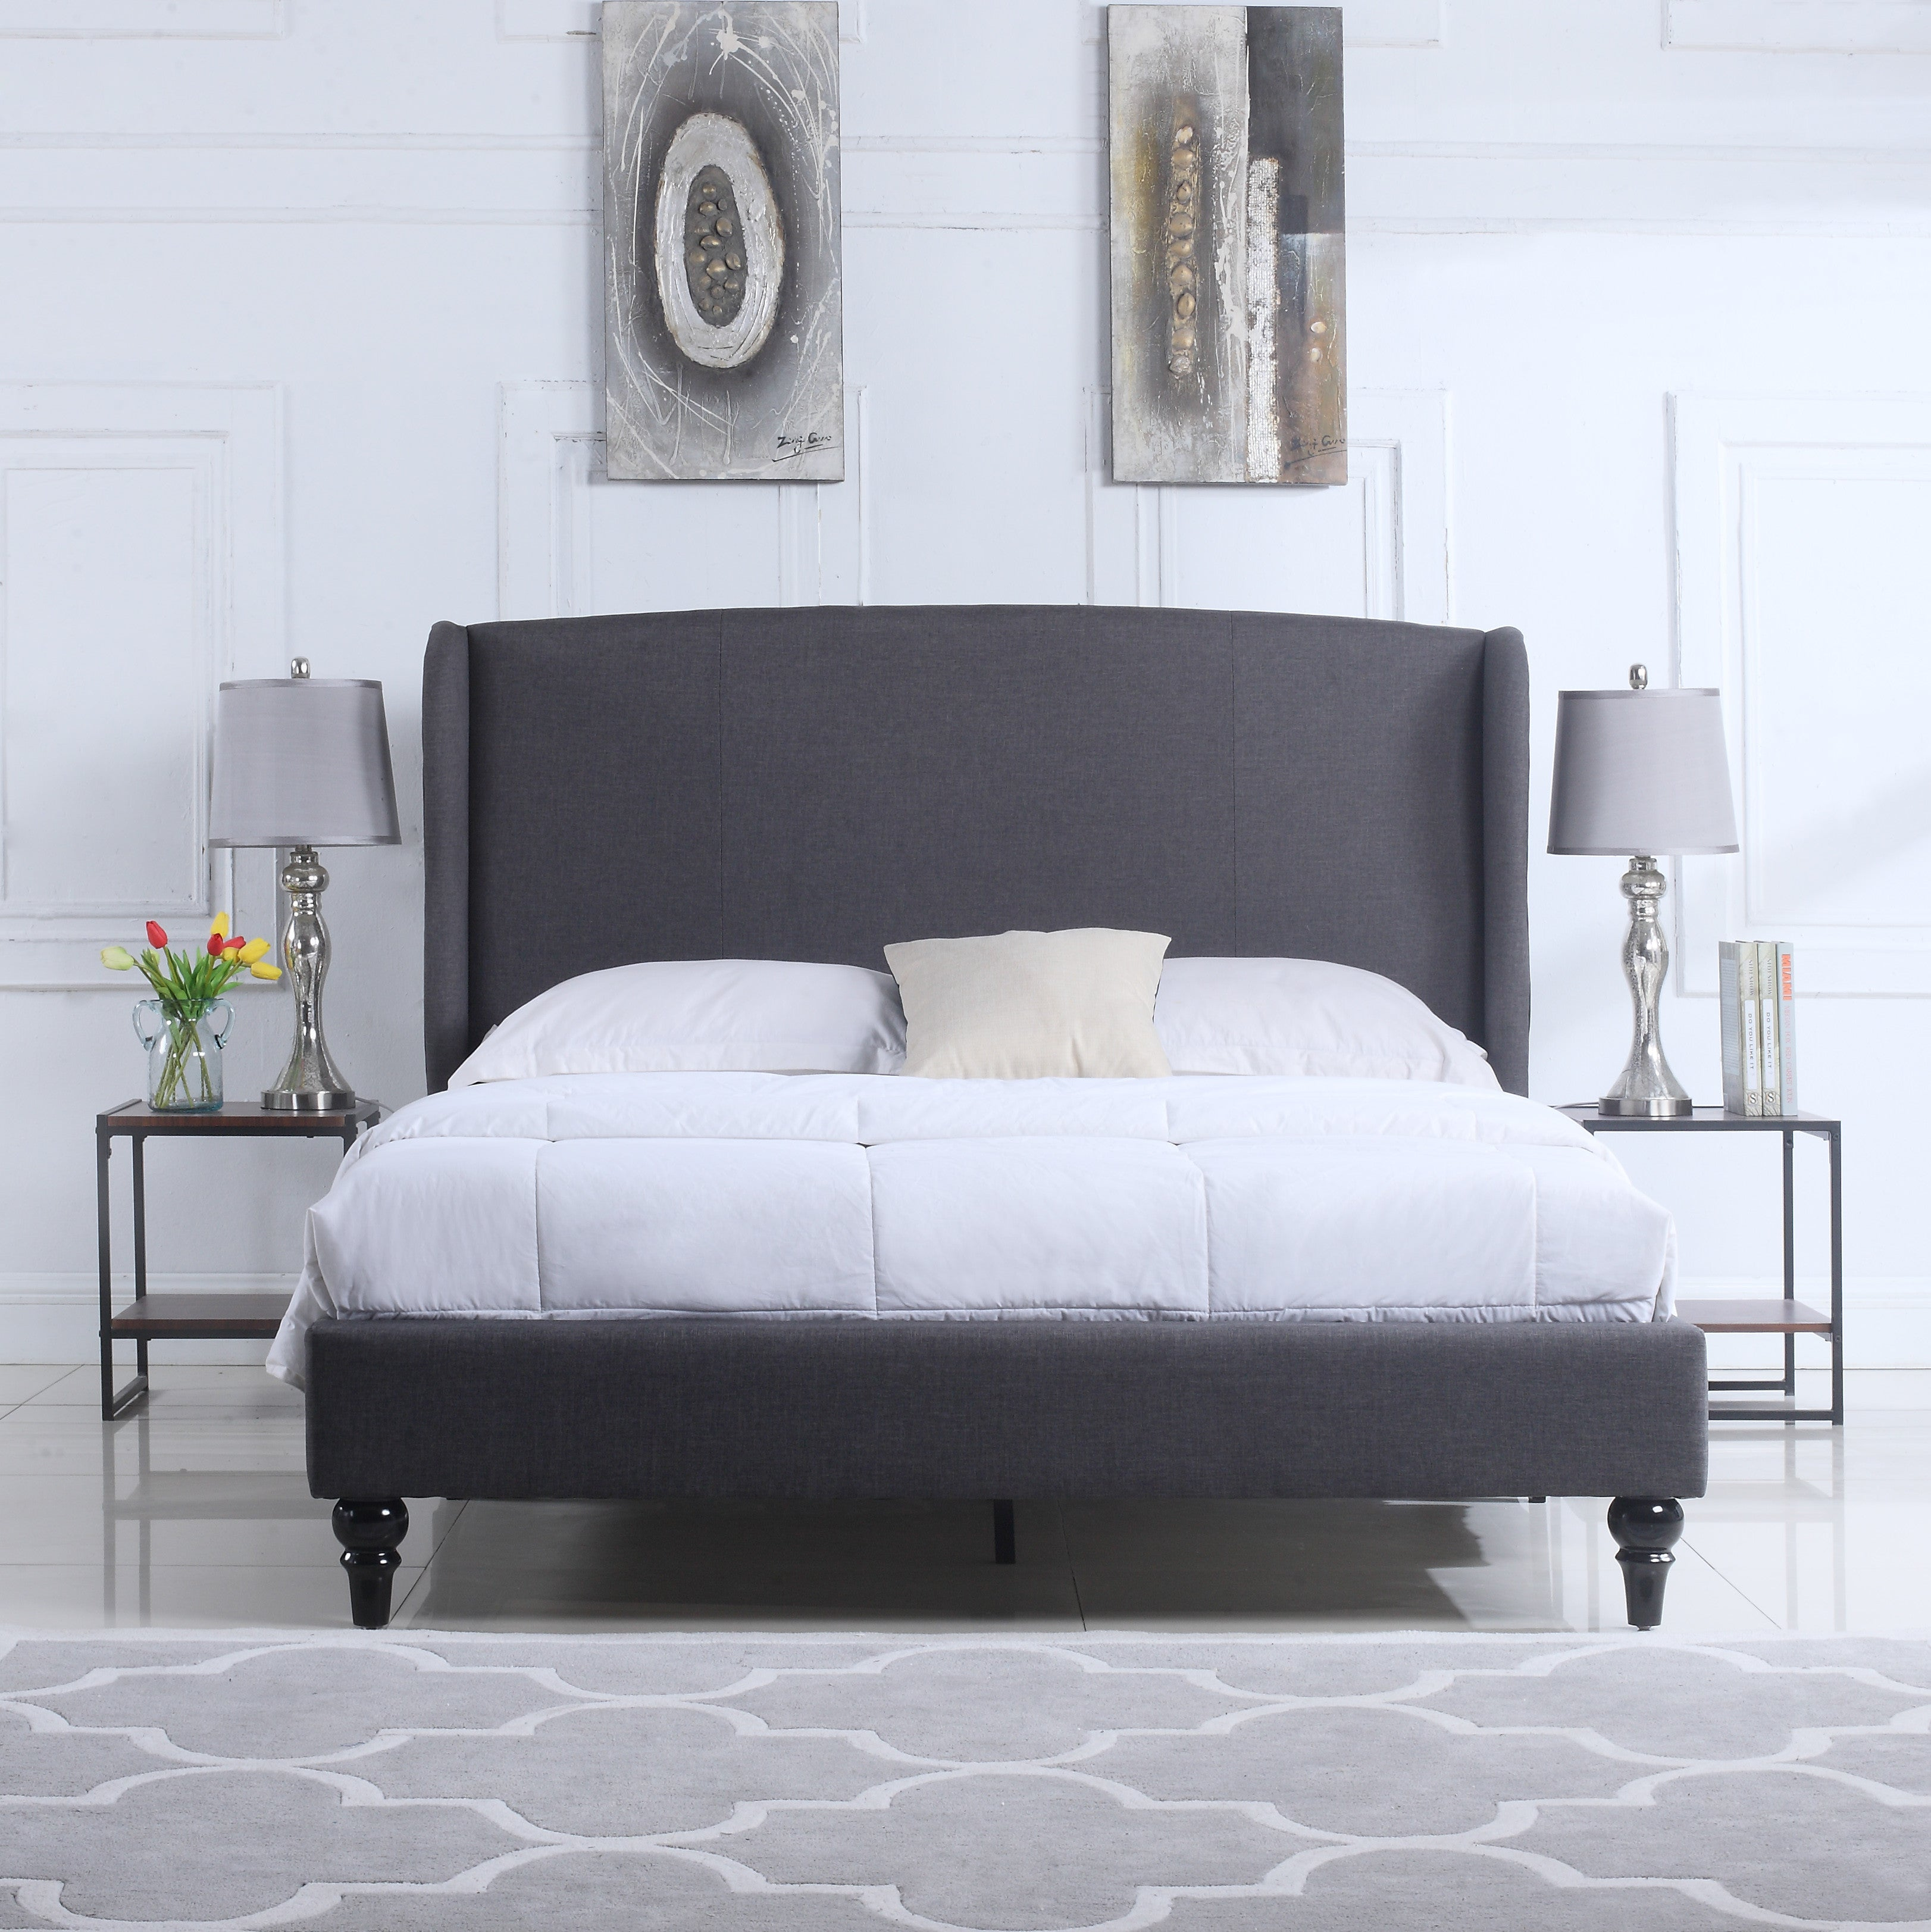 on storage bedroom of bed base collection combined queen with bedding and headboard comfortable black for white beds curvy wood your microfiber brown grey drawers tufted fabric by short